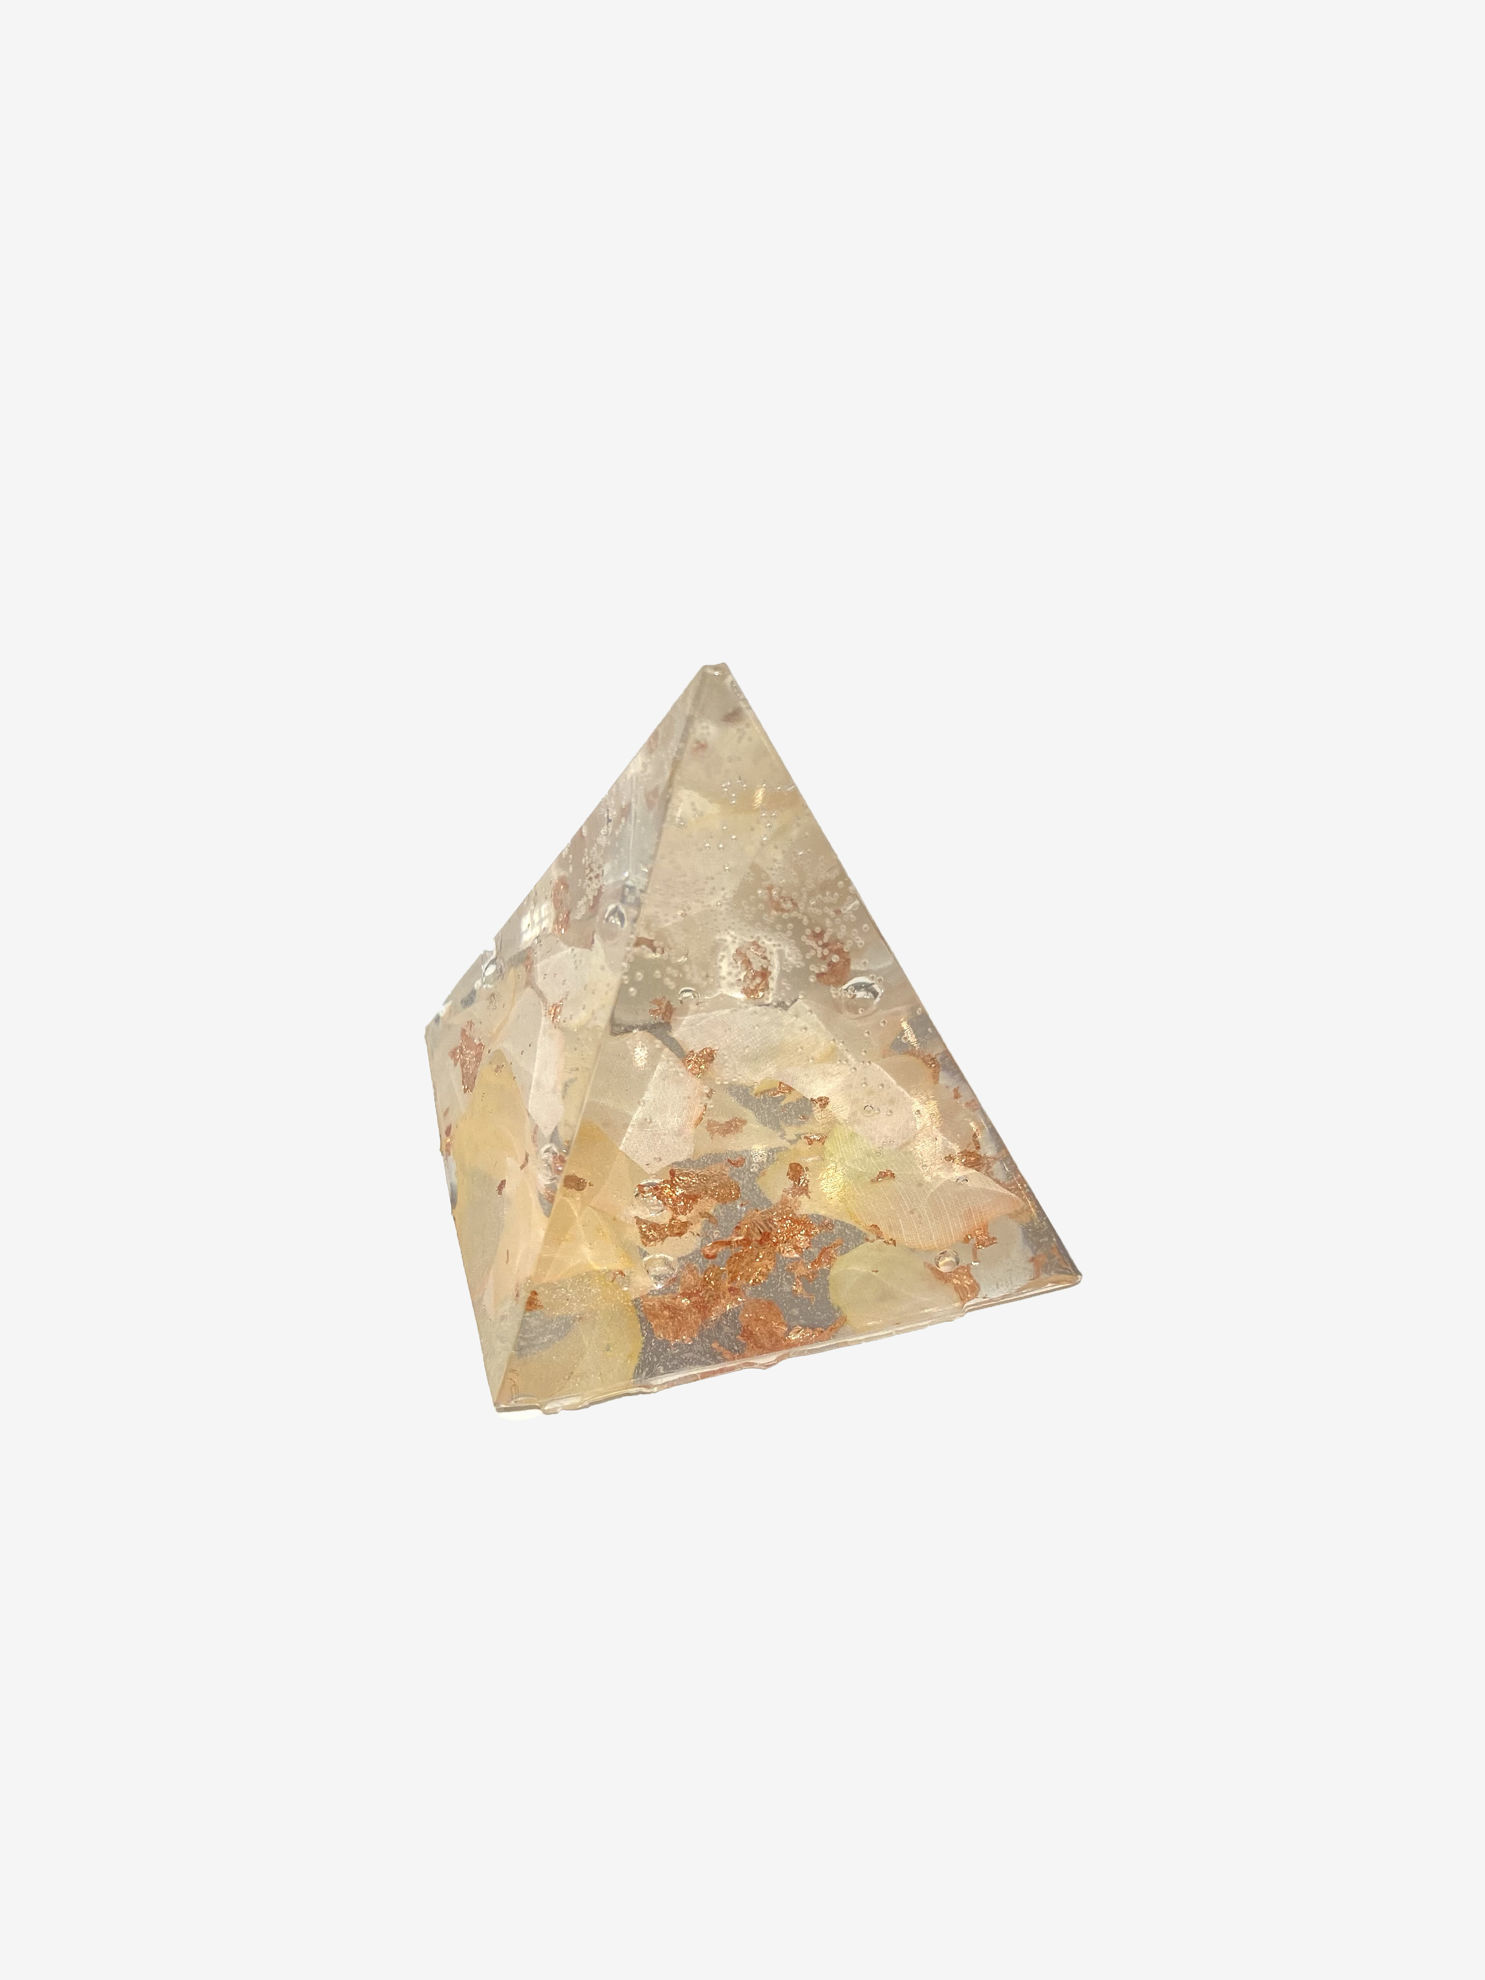 White & Rose Gold Extra Small Pyramid by Spirited Pyramids